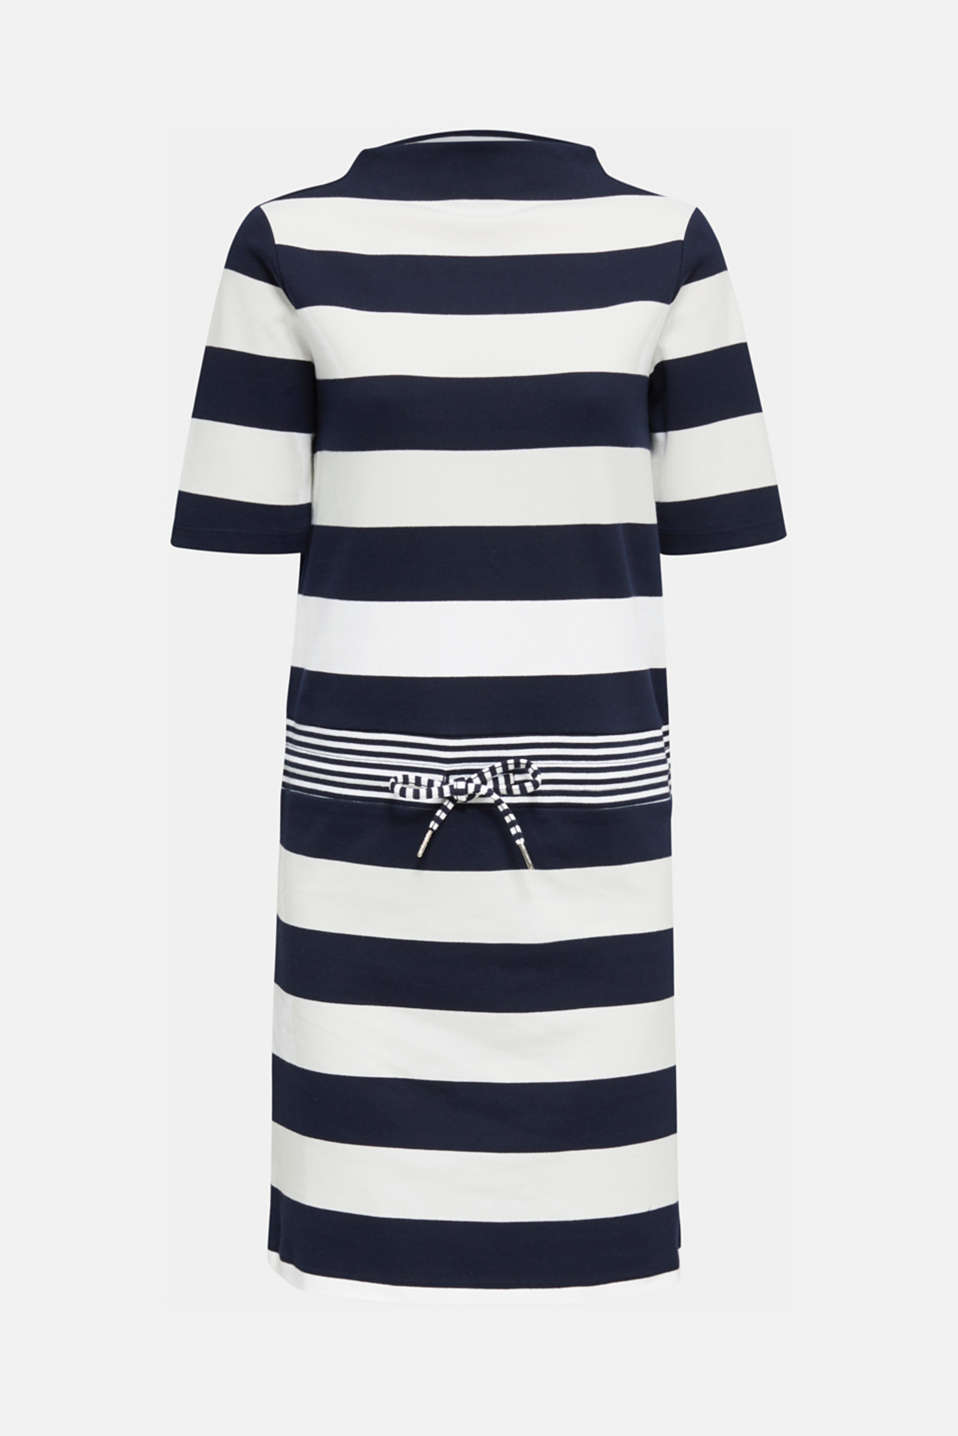 Jersey dress with stripes, 100% cotton, NAVY, detail image number 6